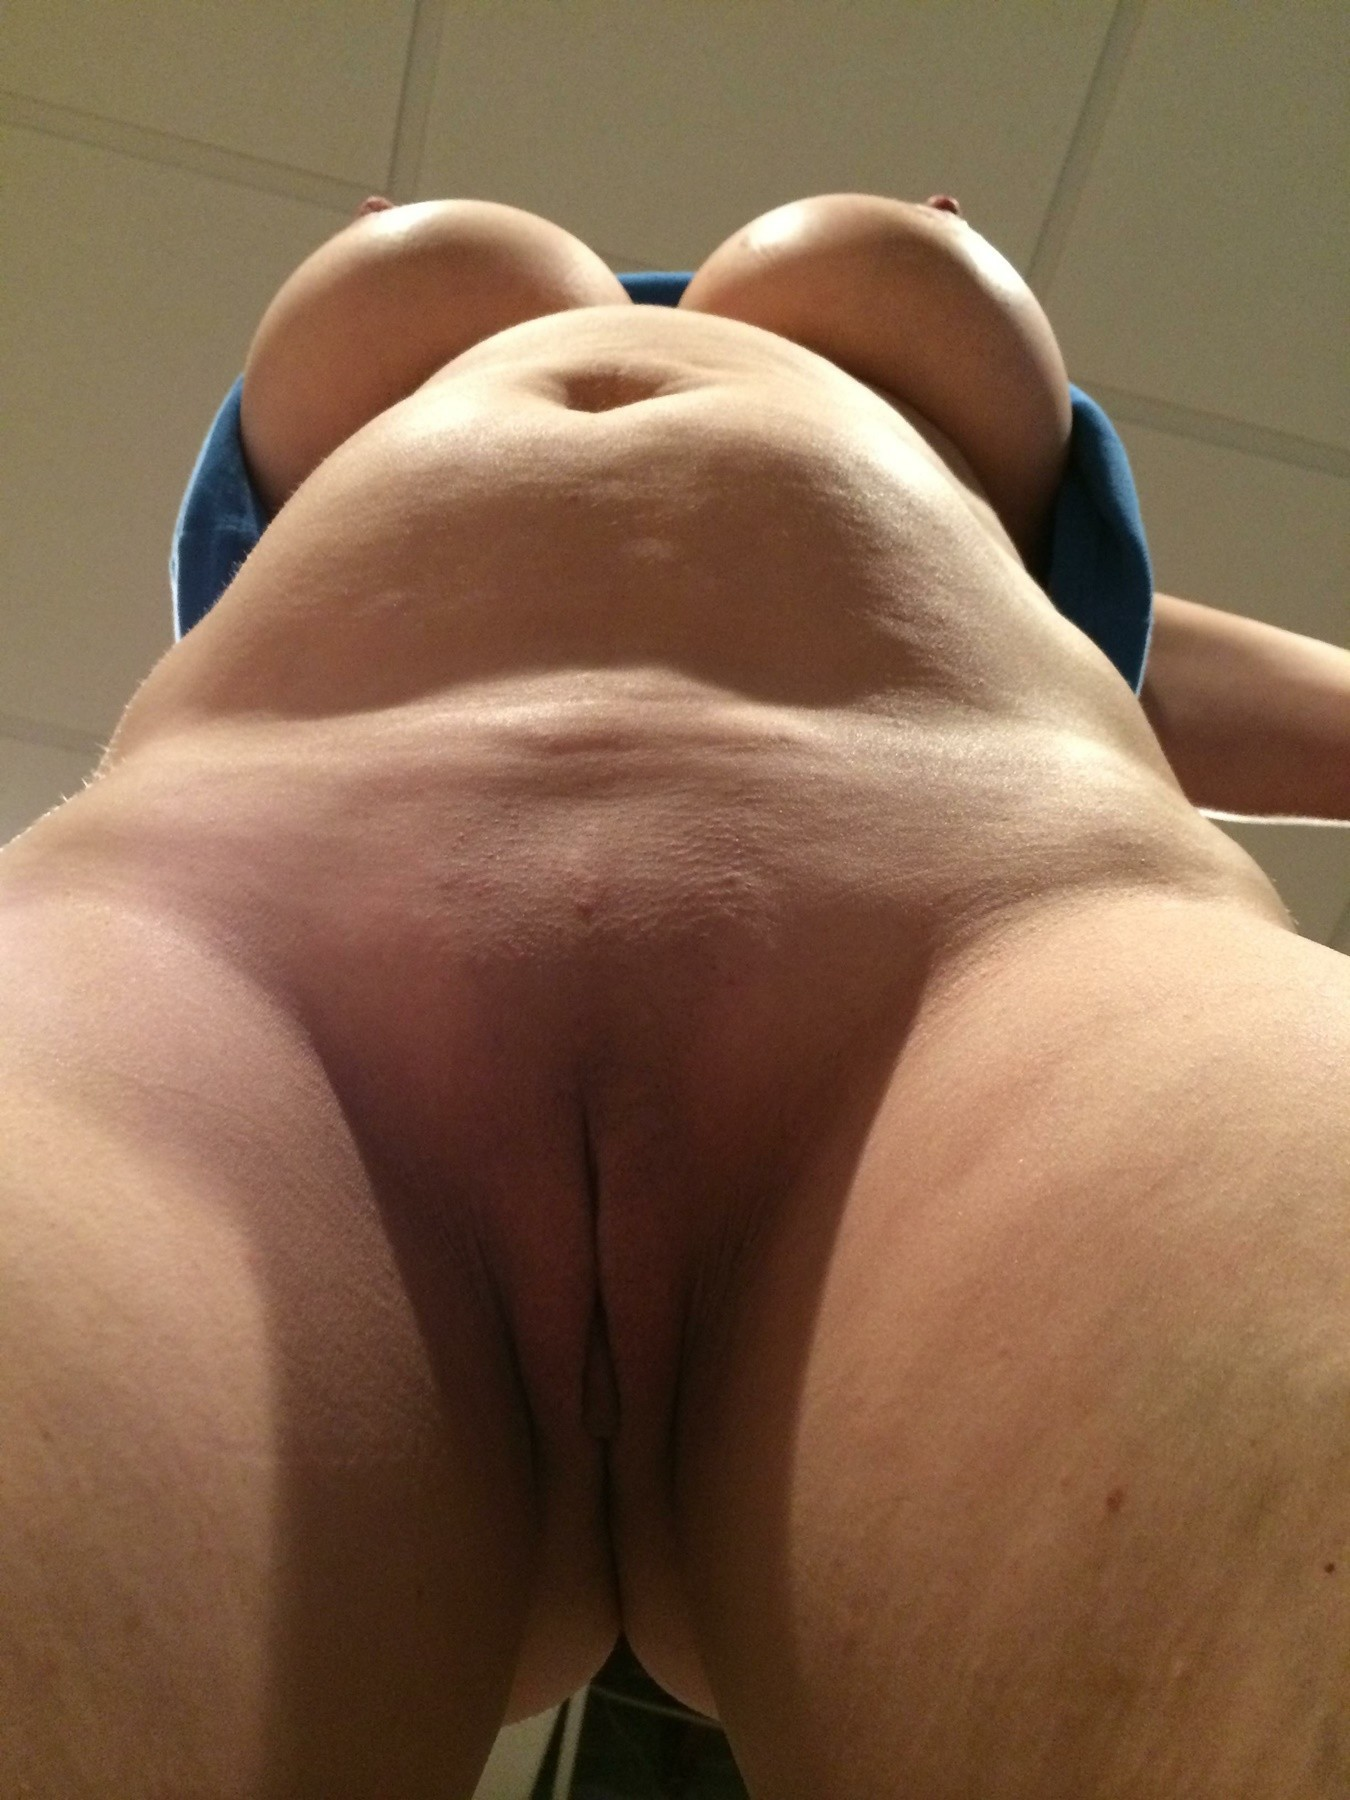 dripping-cameltoe-pussy-and-hard-nipples